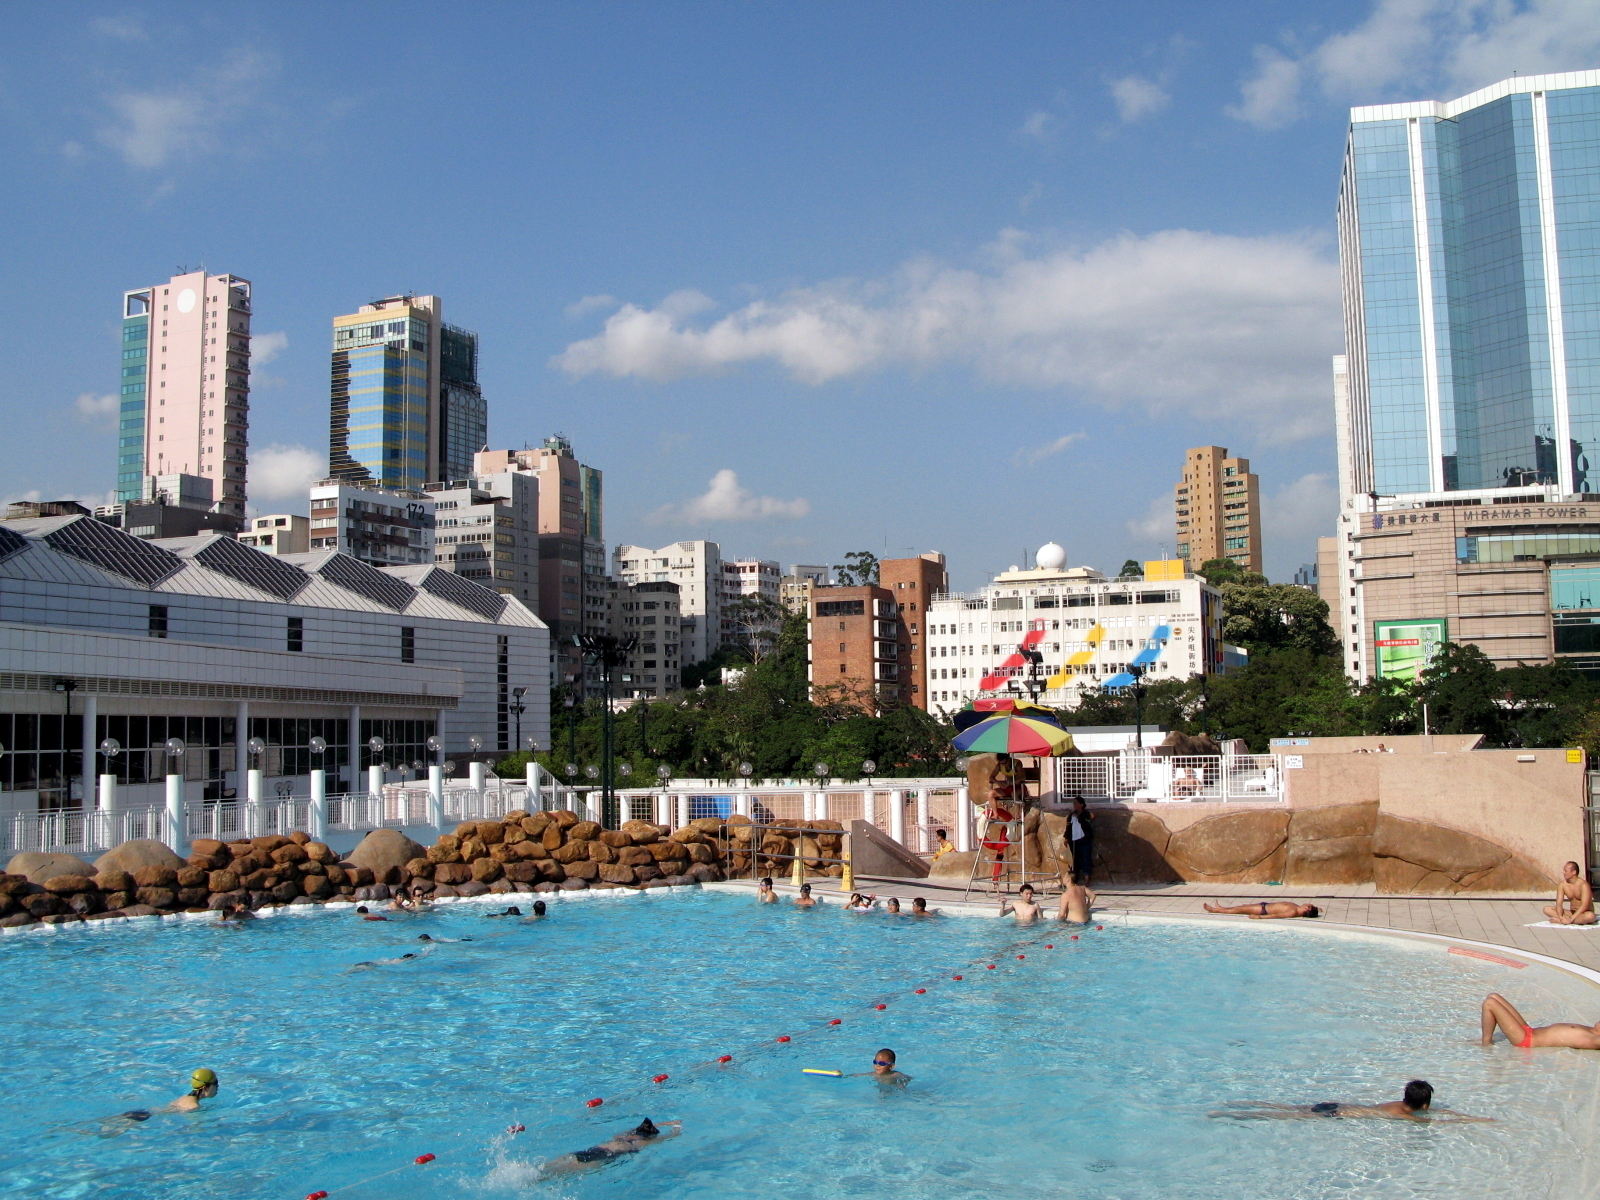 Kowloon Park Swimming Pool